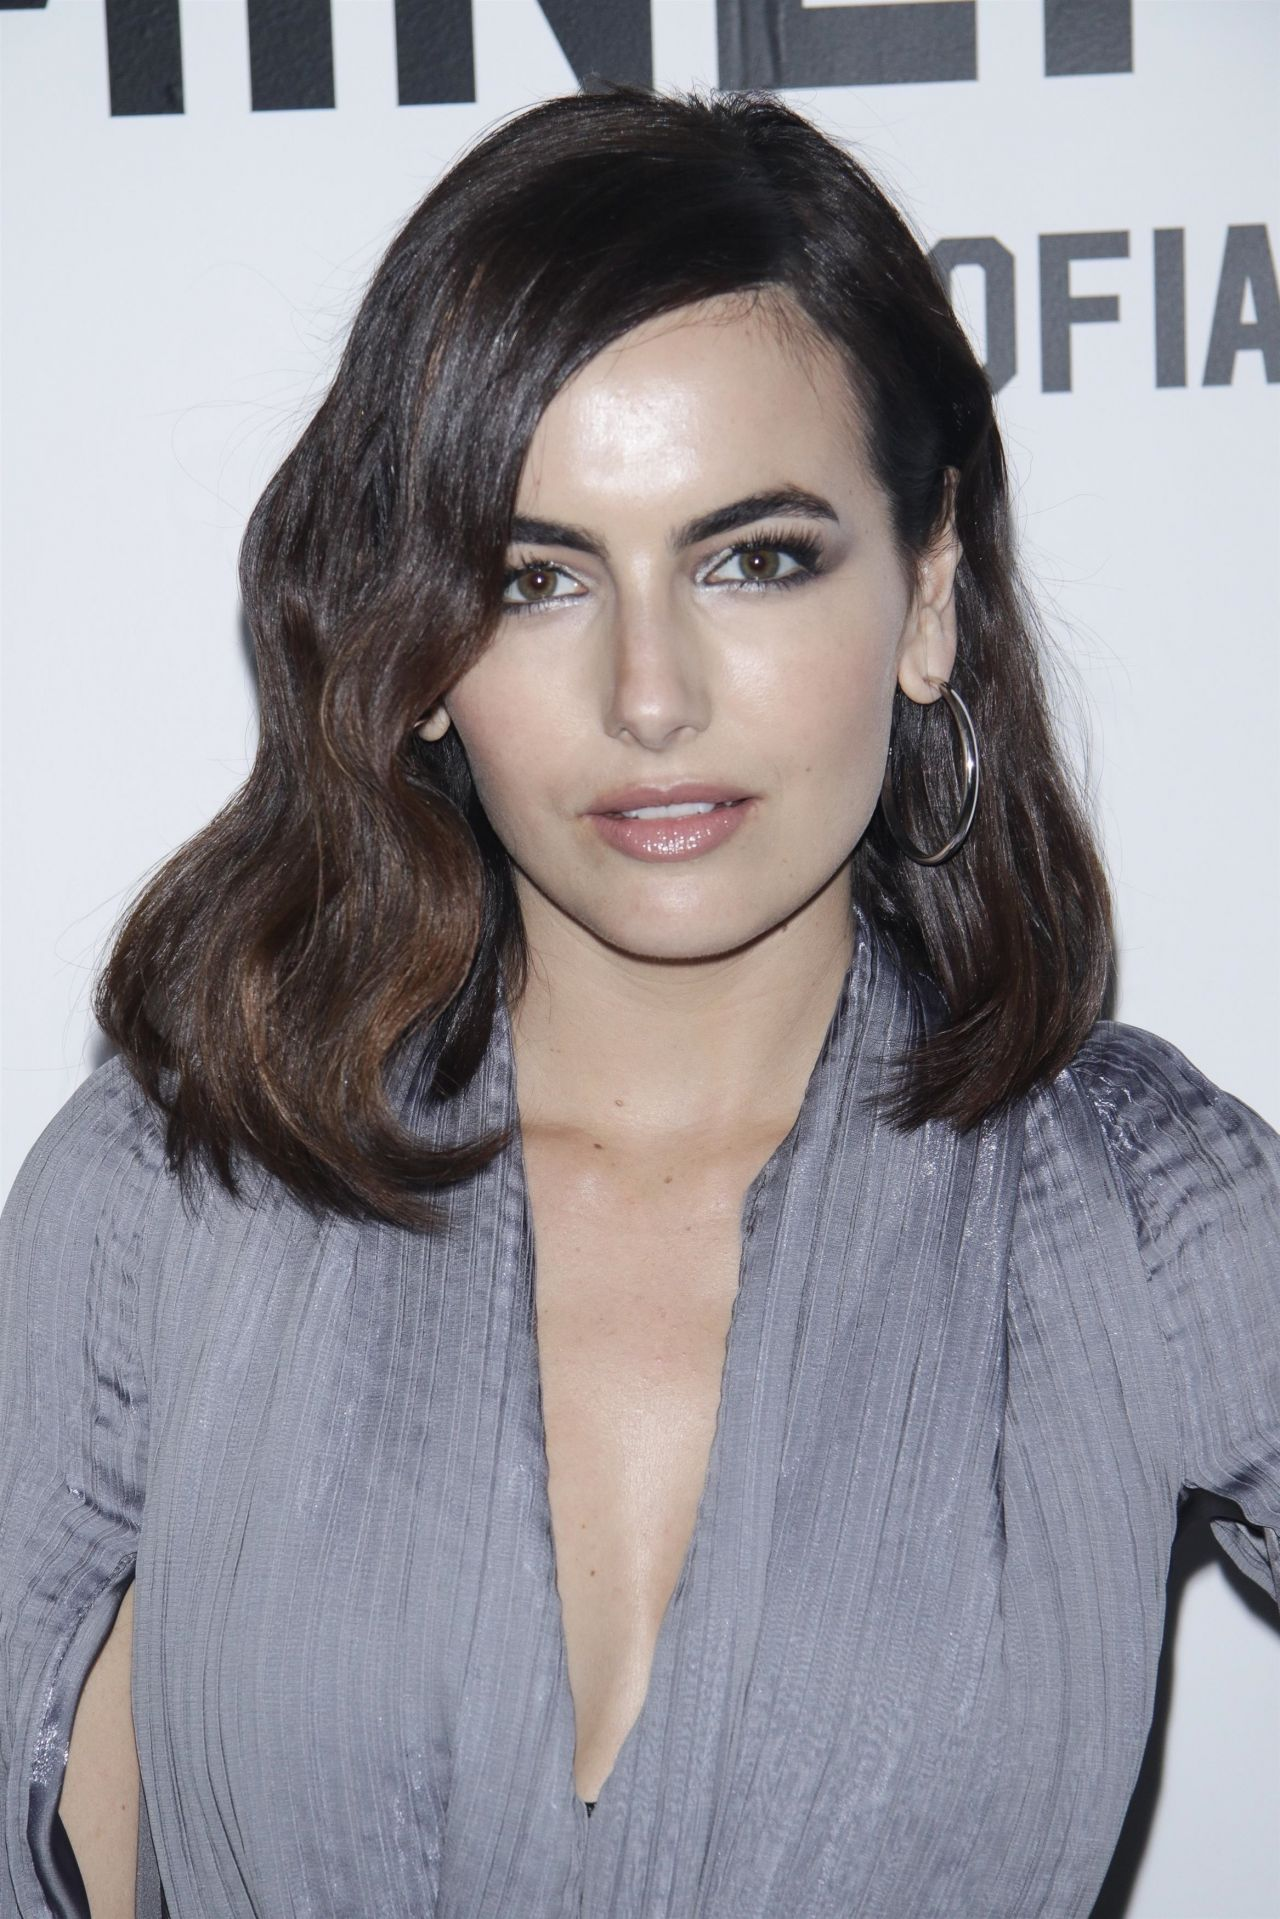 Camilla Belle The Minefield Girl Audio Visual Book